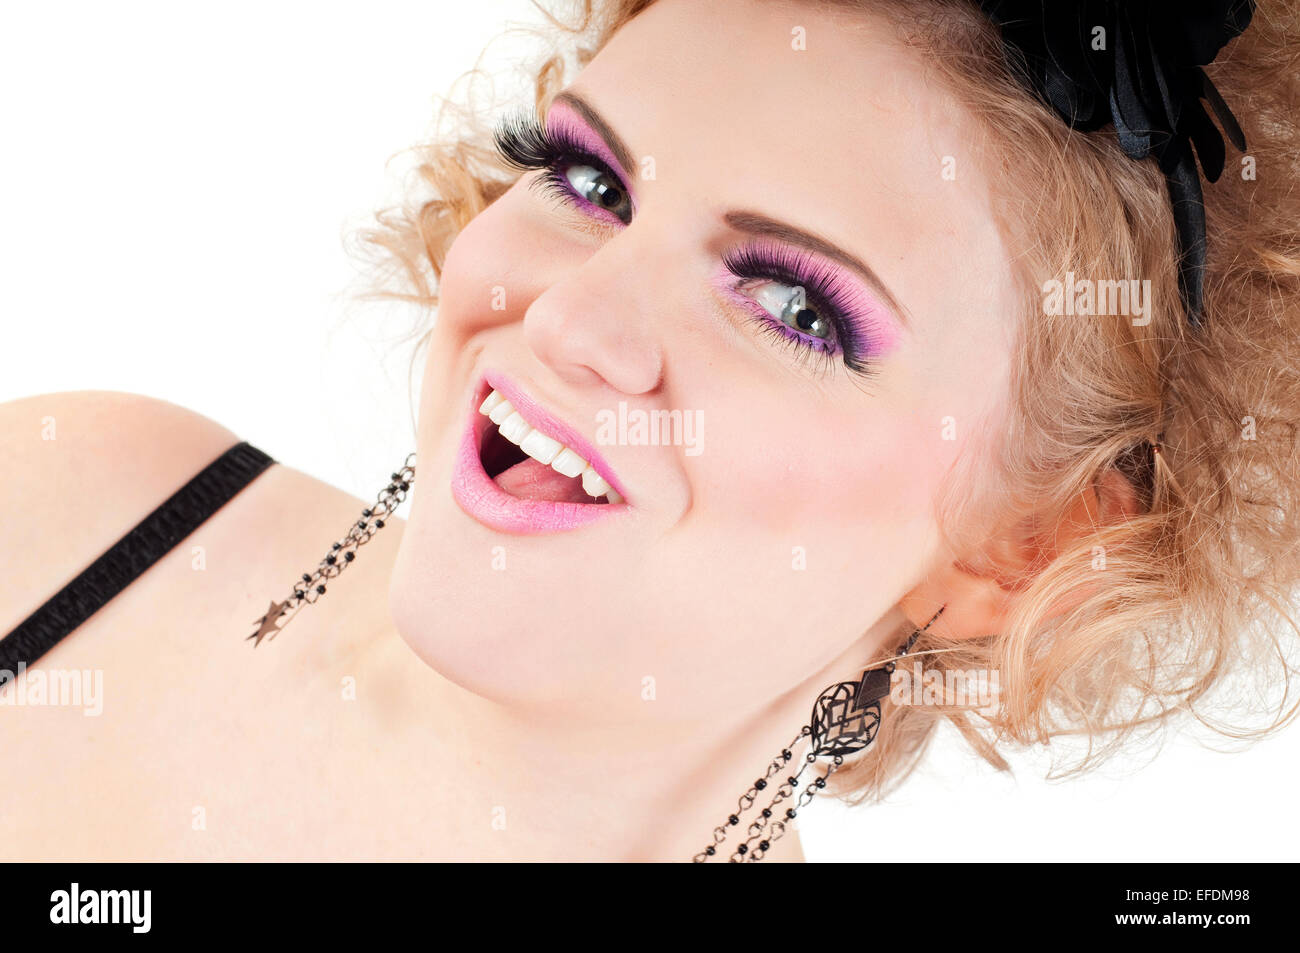 Blonde with fancy make-up grimacing - Stock Image